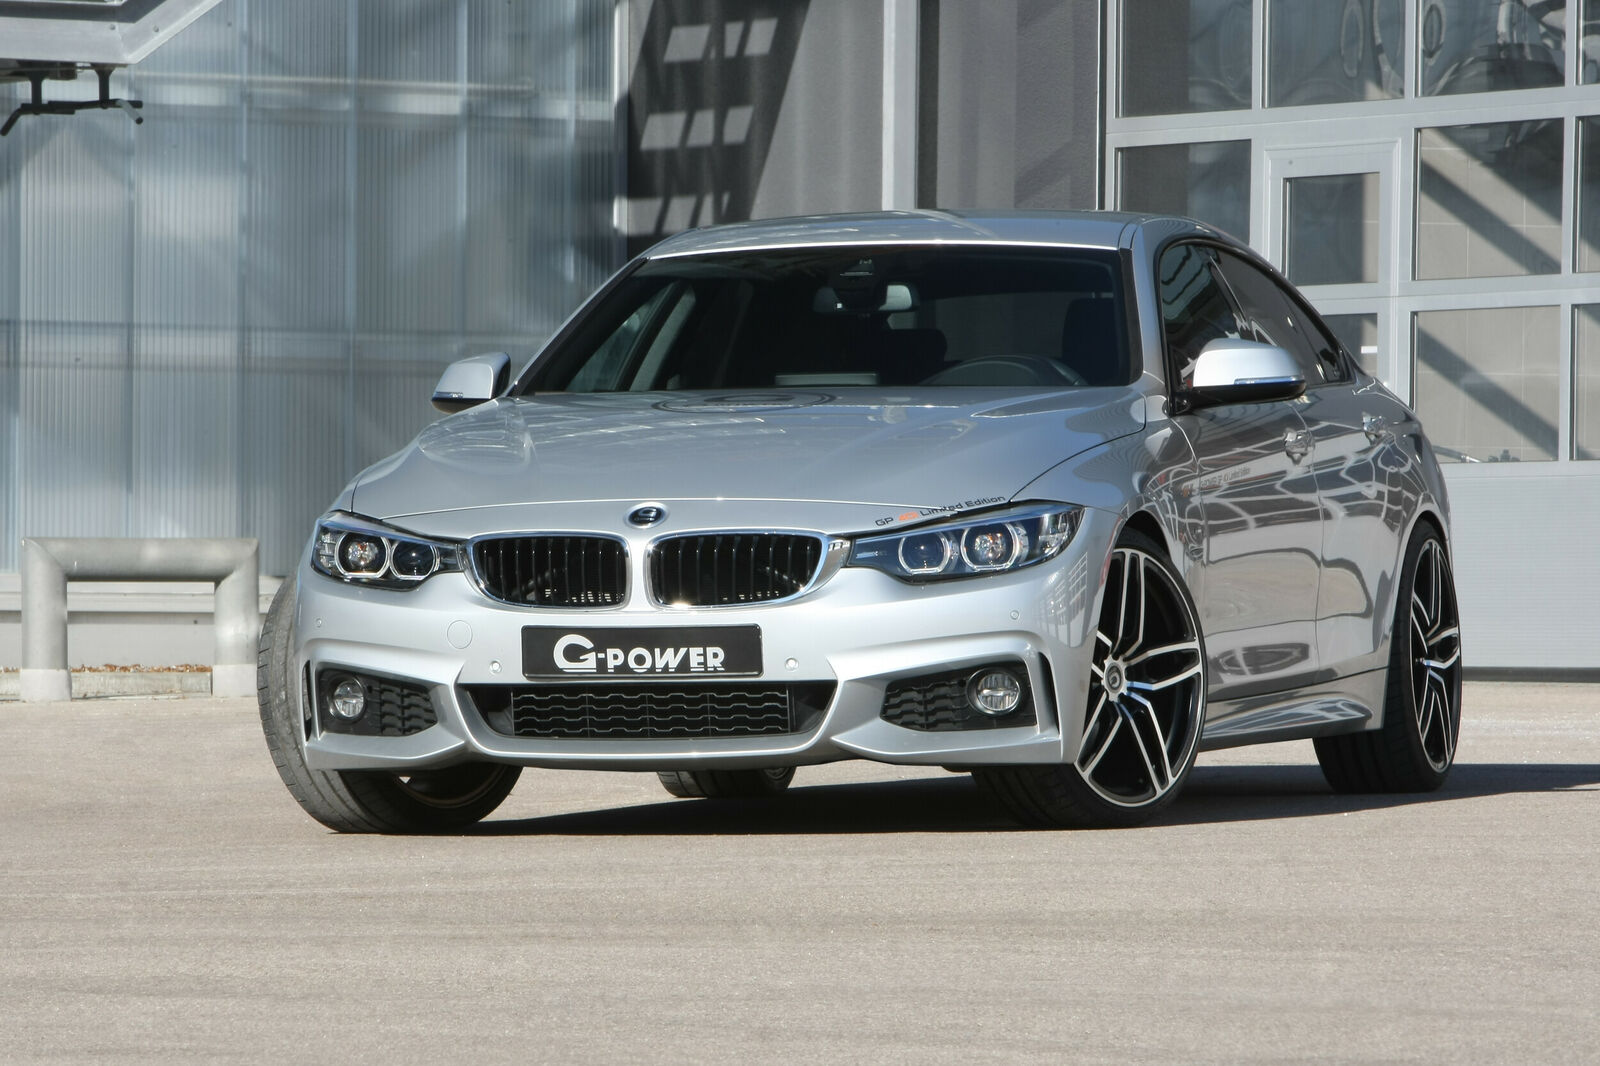 g power 440i gran coupe f36 gp 40i limited edition 1